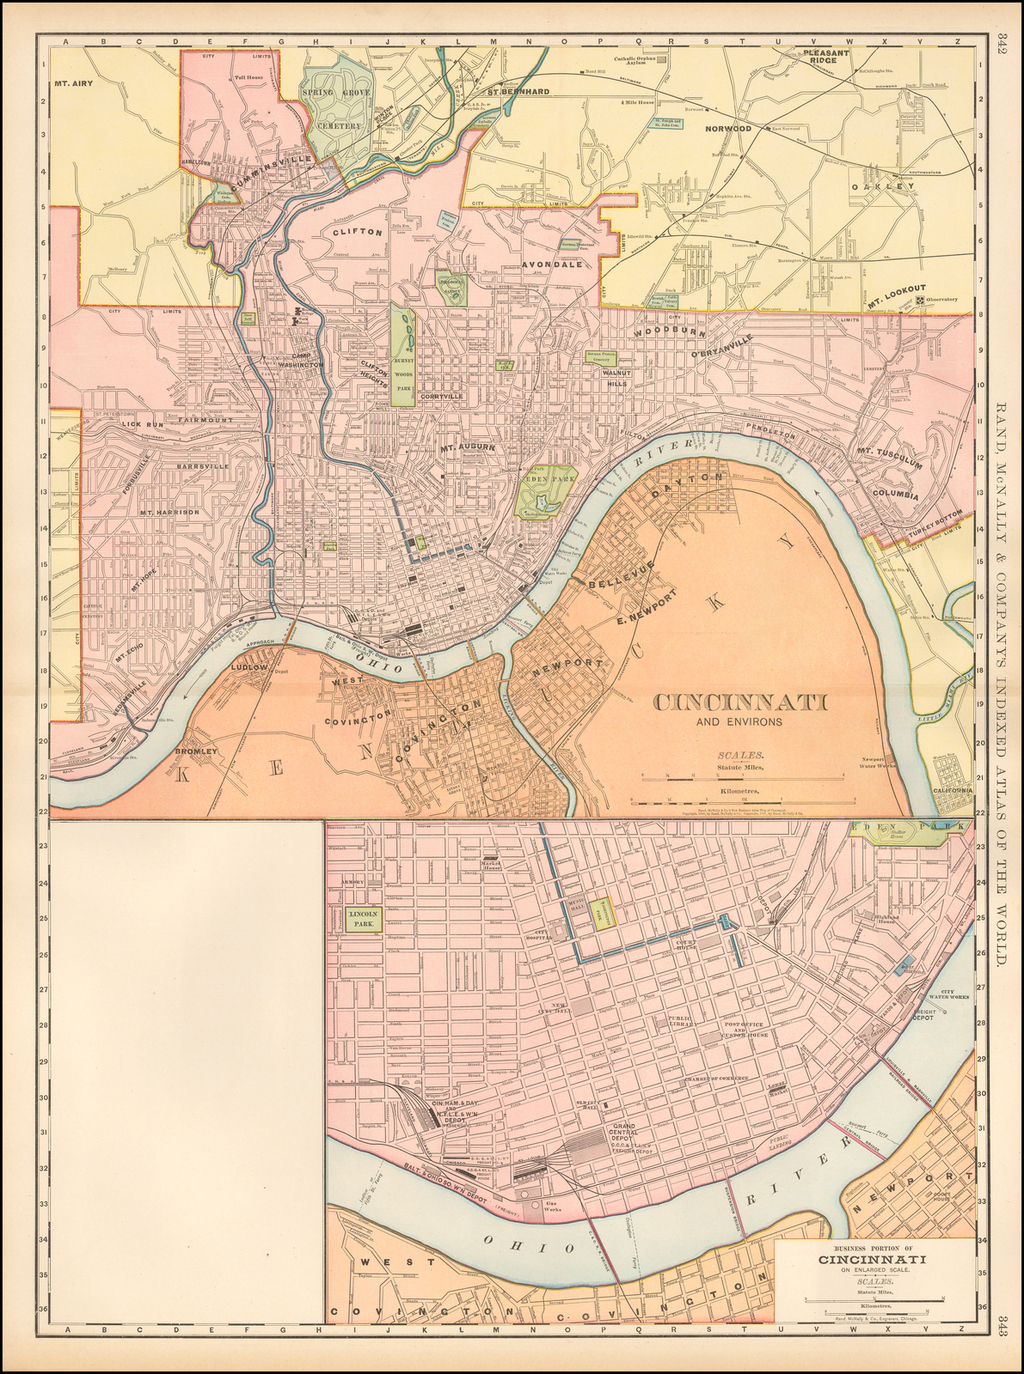 Cincinnati and Environs [with] Business Portion of Cincinnati on Enlarged Scale By Rand McNally & Company